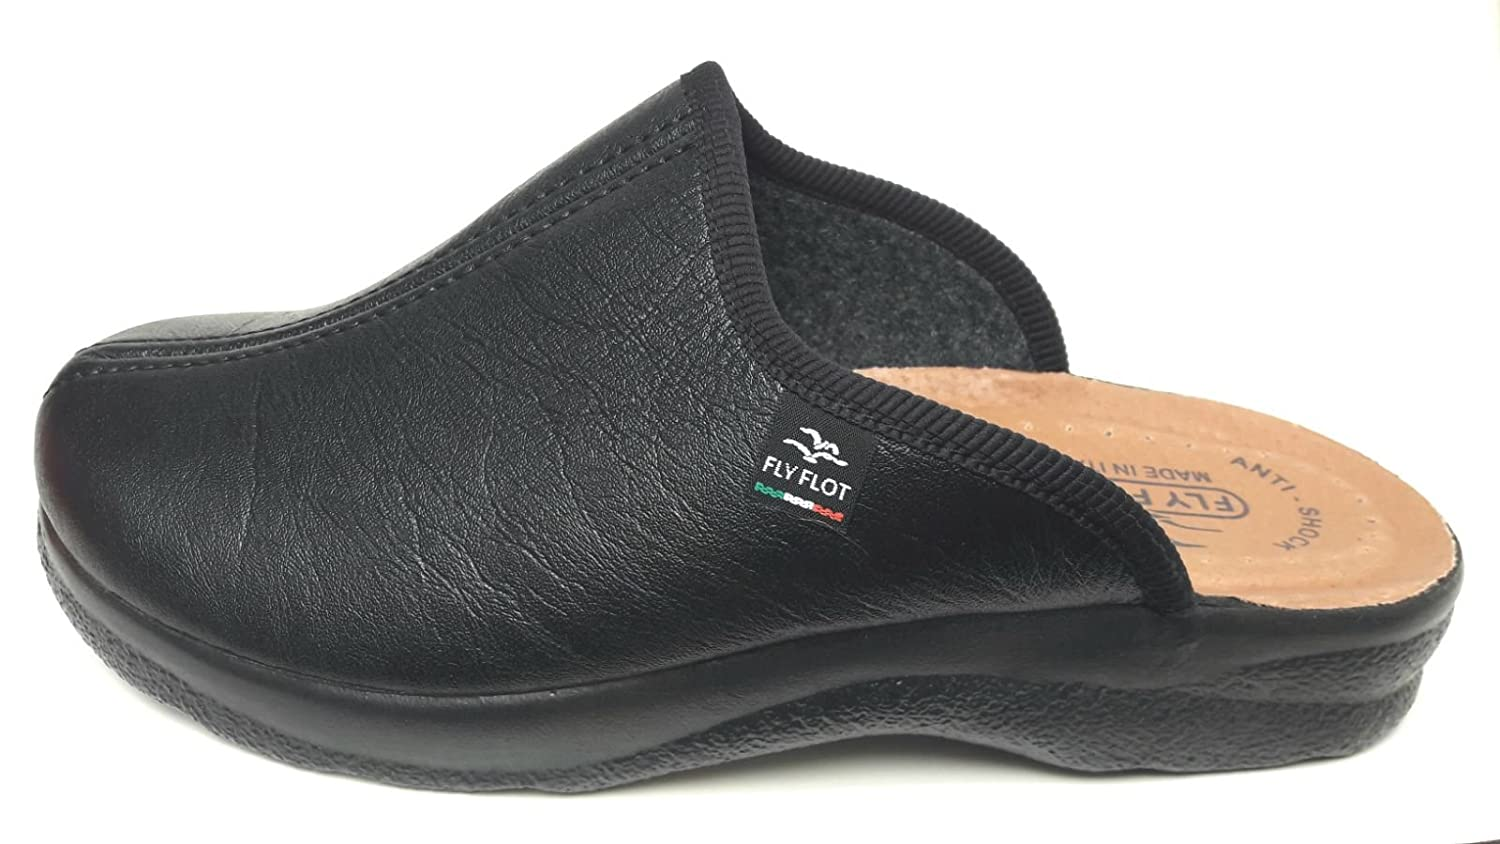 Fly Flot 82920 LE Nero n 41  Amazon.co.uk  Shoes   Bags 00156aef9df